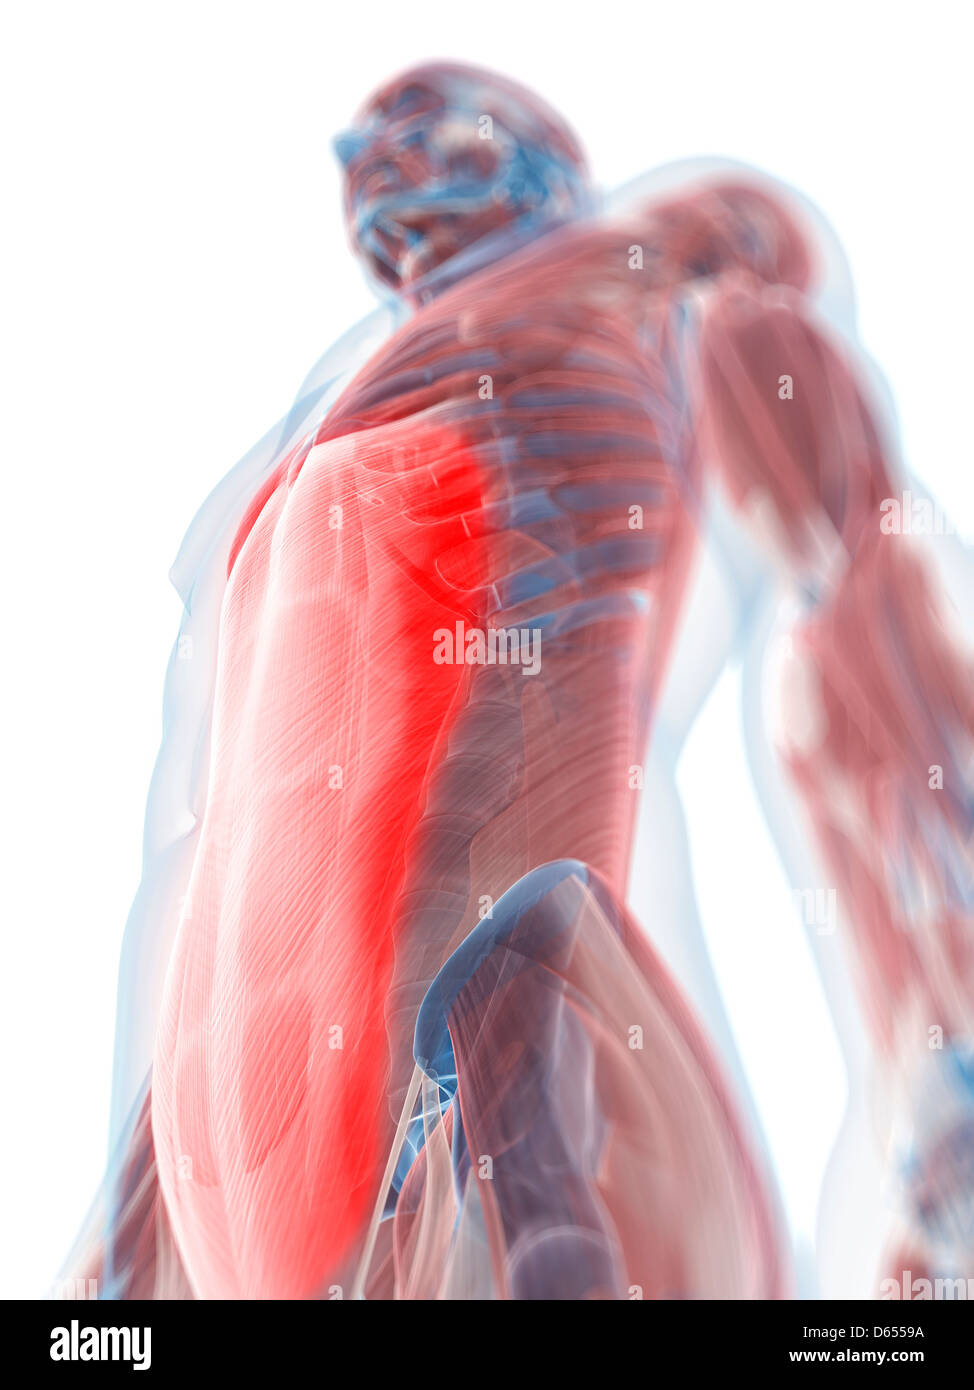 Rectus abdominis muscle, artwork Stock Photo: 55432982 - Alamy